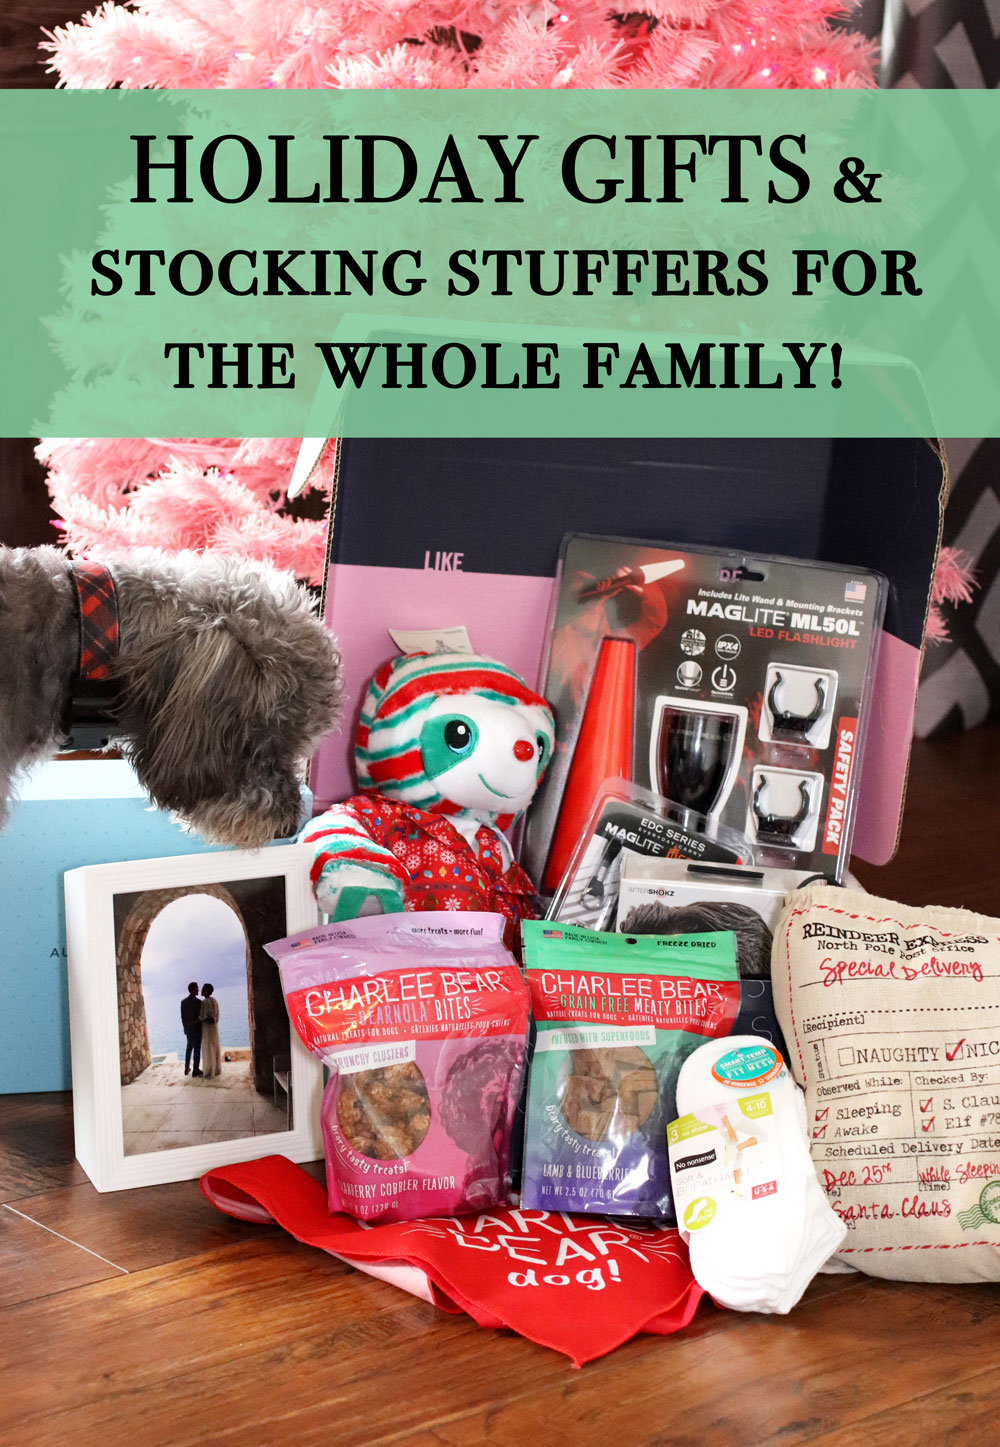 Holiday Gifts & Stocking Stuffer Ideas for the Whole Family!